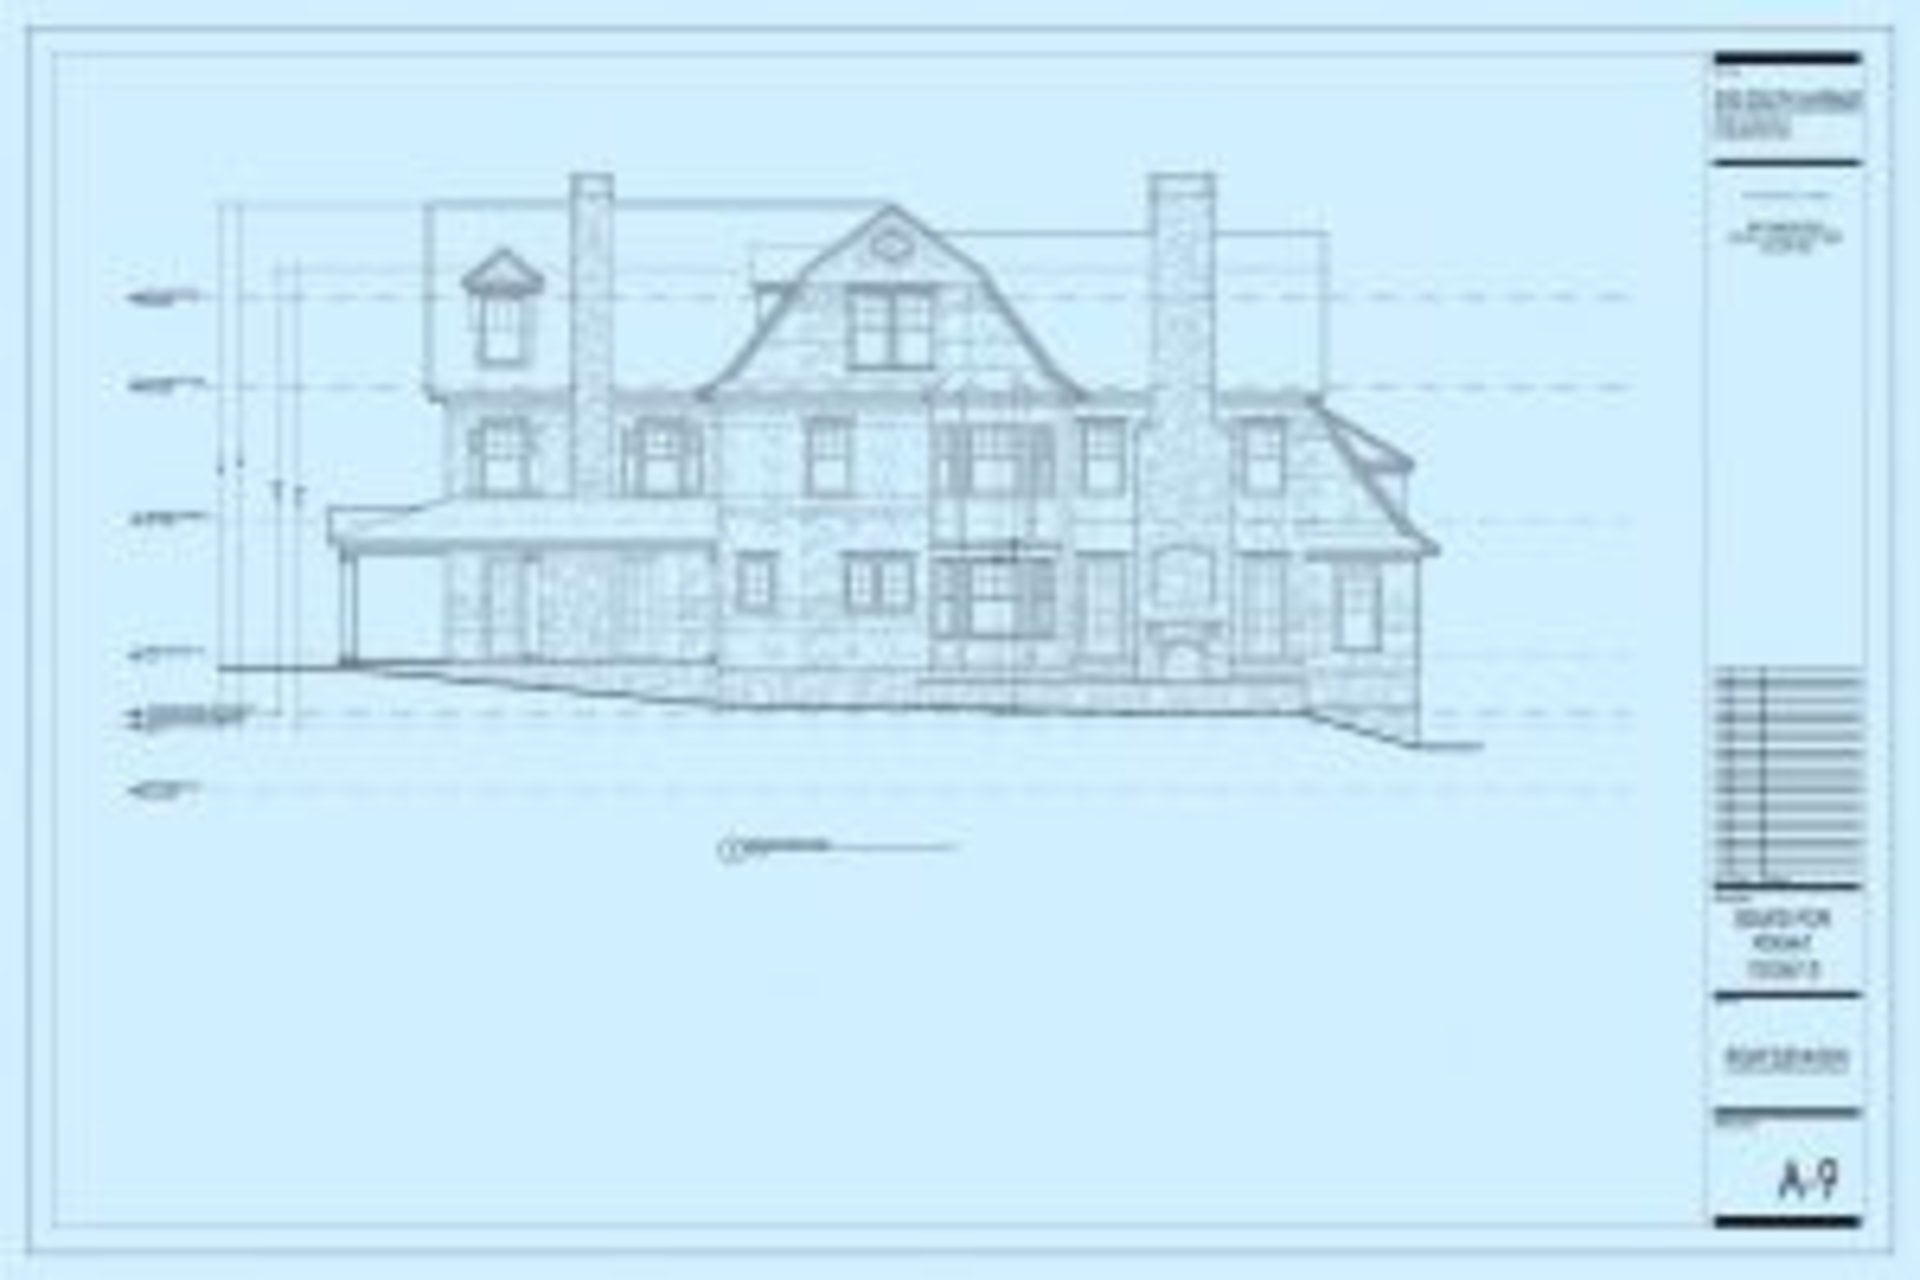 Right Elevation Plan for 310 South Avenue, New Canaan, CT - Architecture - Andrew Nuzzi Architects